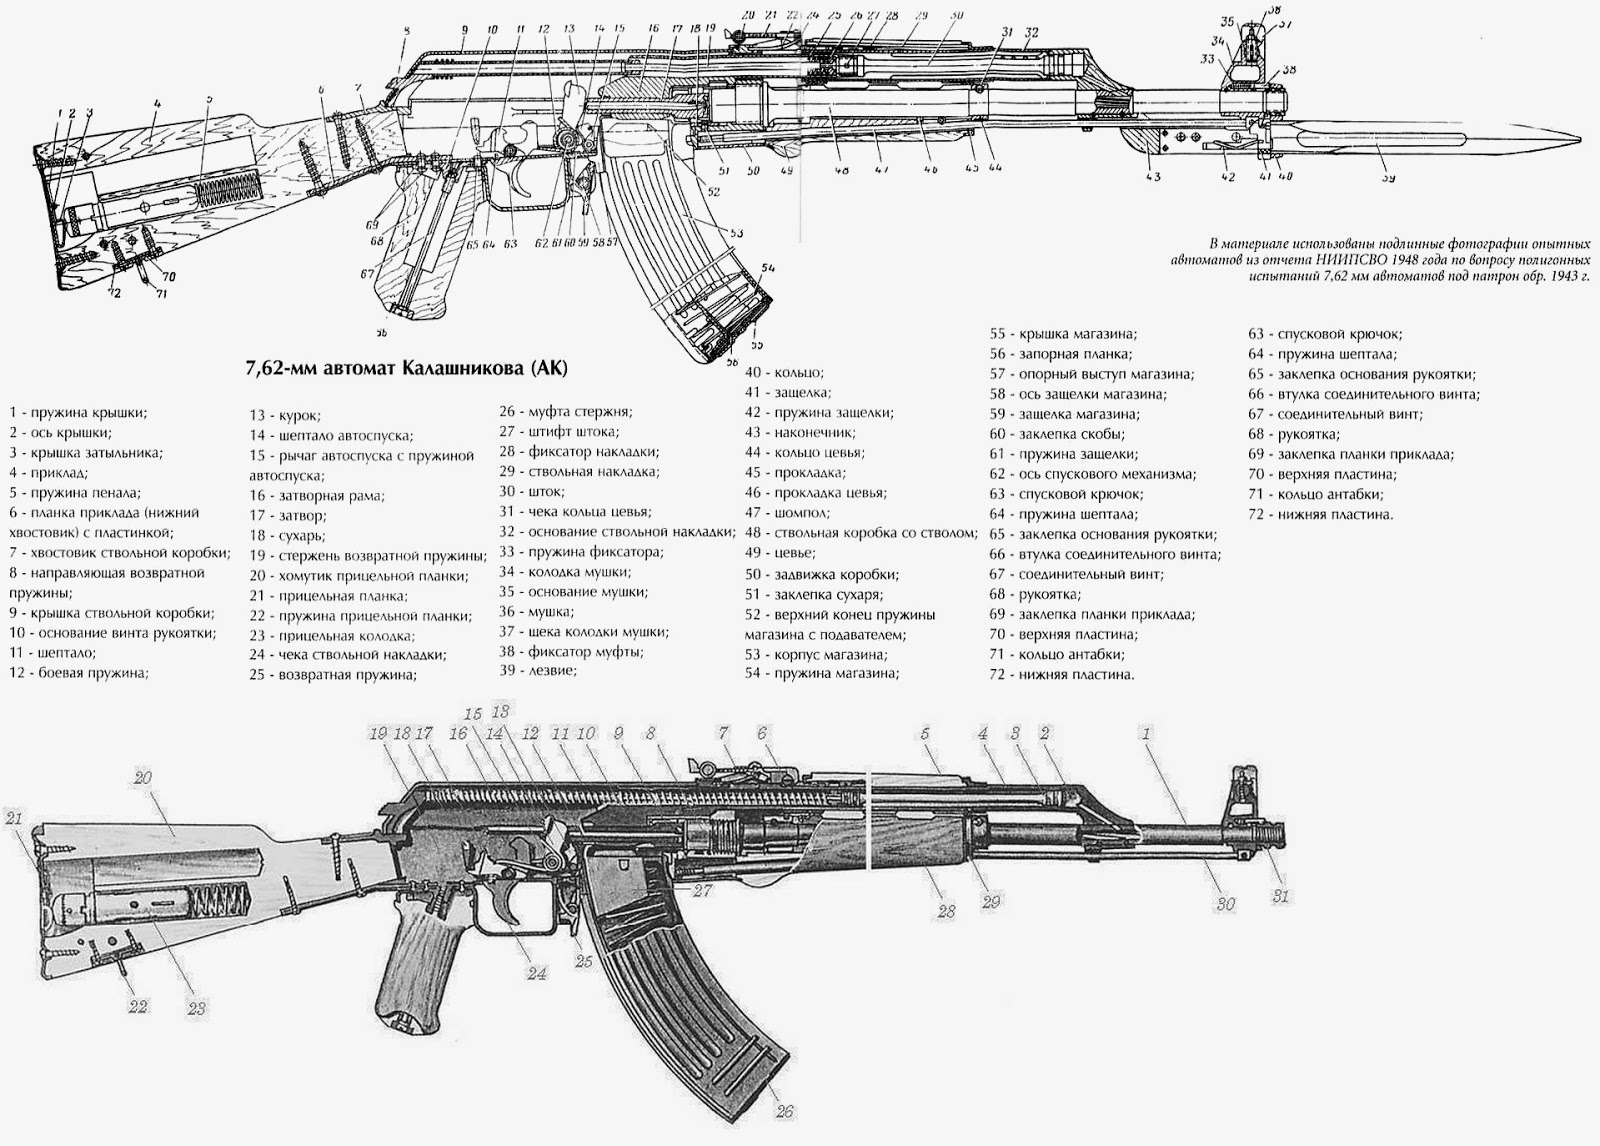 akm rifle diagram pictures to pin on pinterest